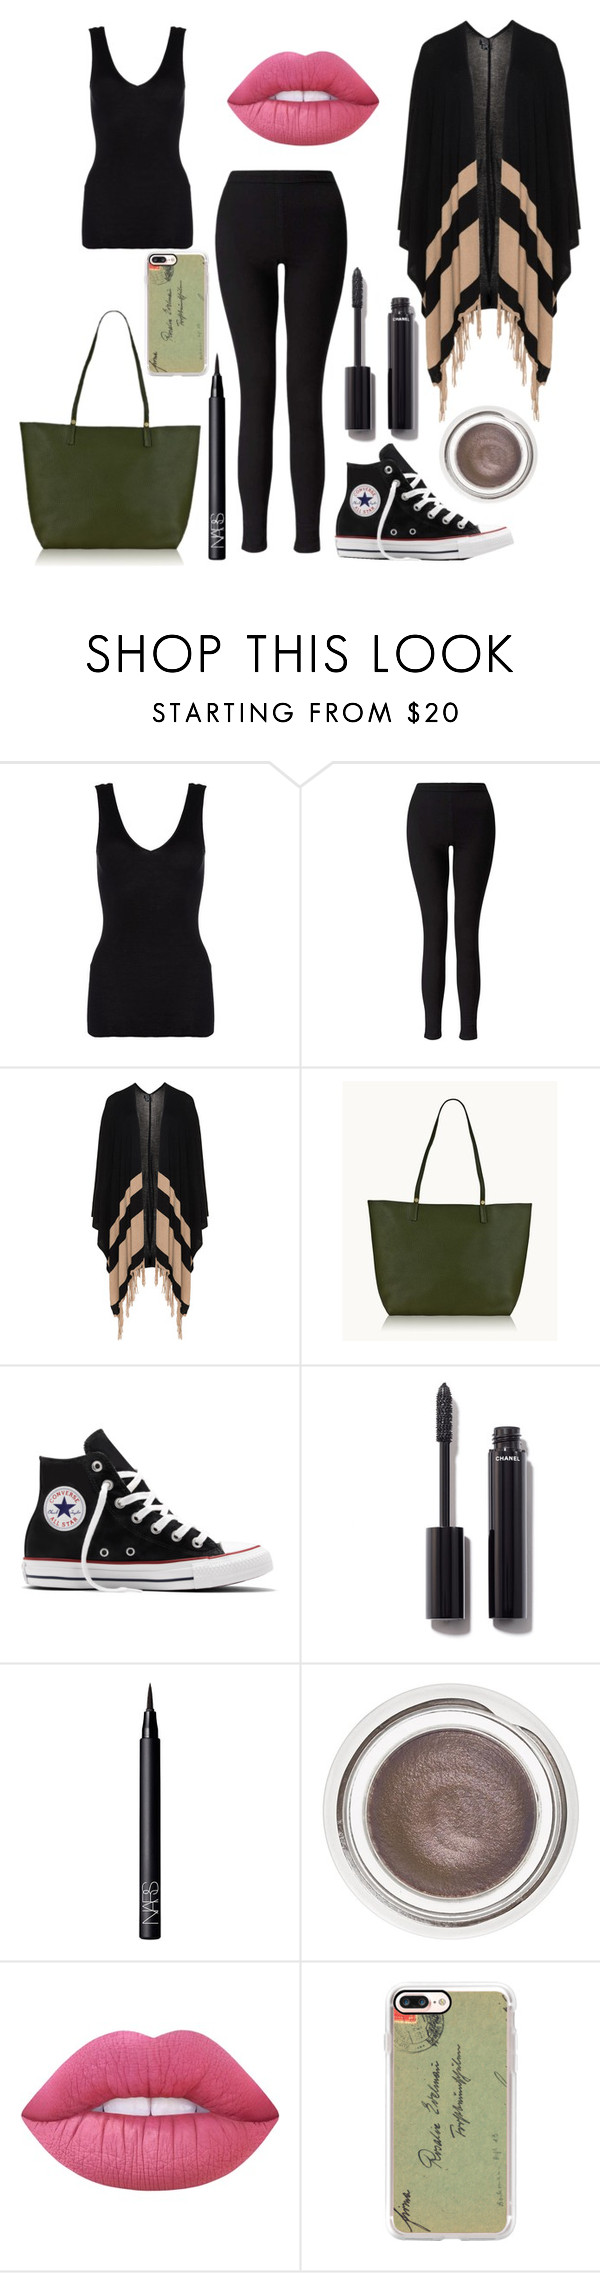 """""""* GOING COMFY CHIC by bOO *"""" by boo-sandra on Polyvore featuring Hanro, Miss Selfridge, Yoek, GiGi New York, Converse, Chanel, NARS Cosmetics, Charlotte Tilbury, Lime Crime and Casetify"""